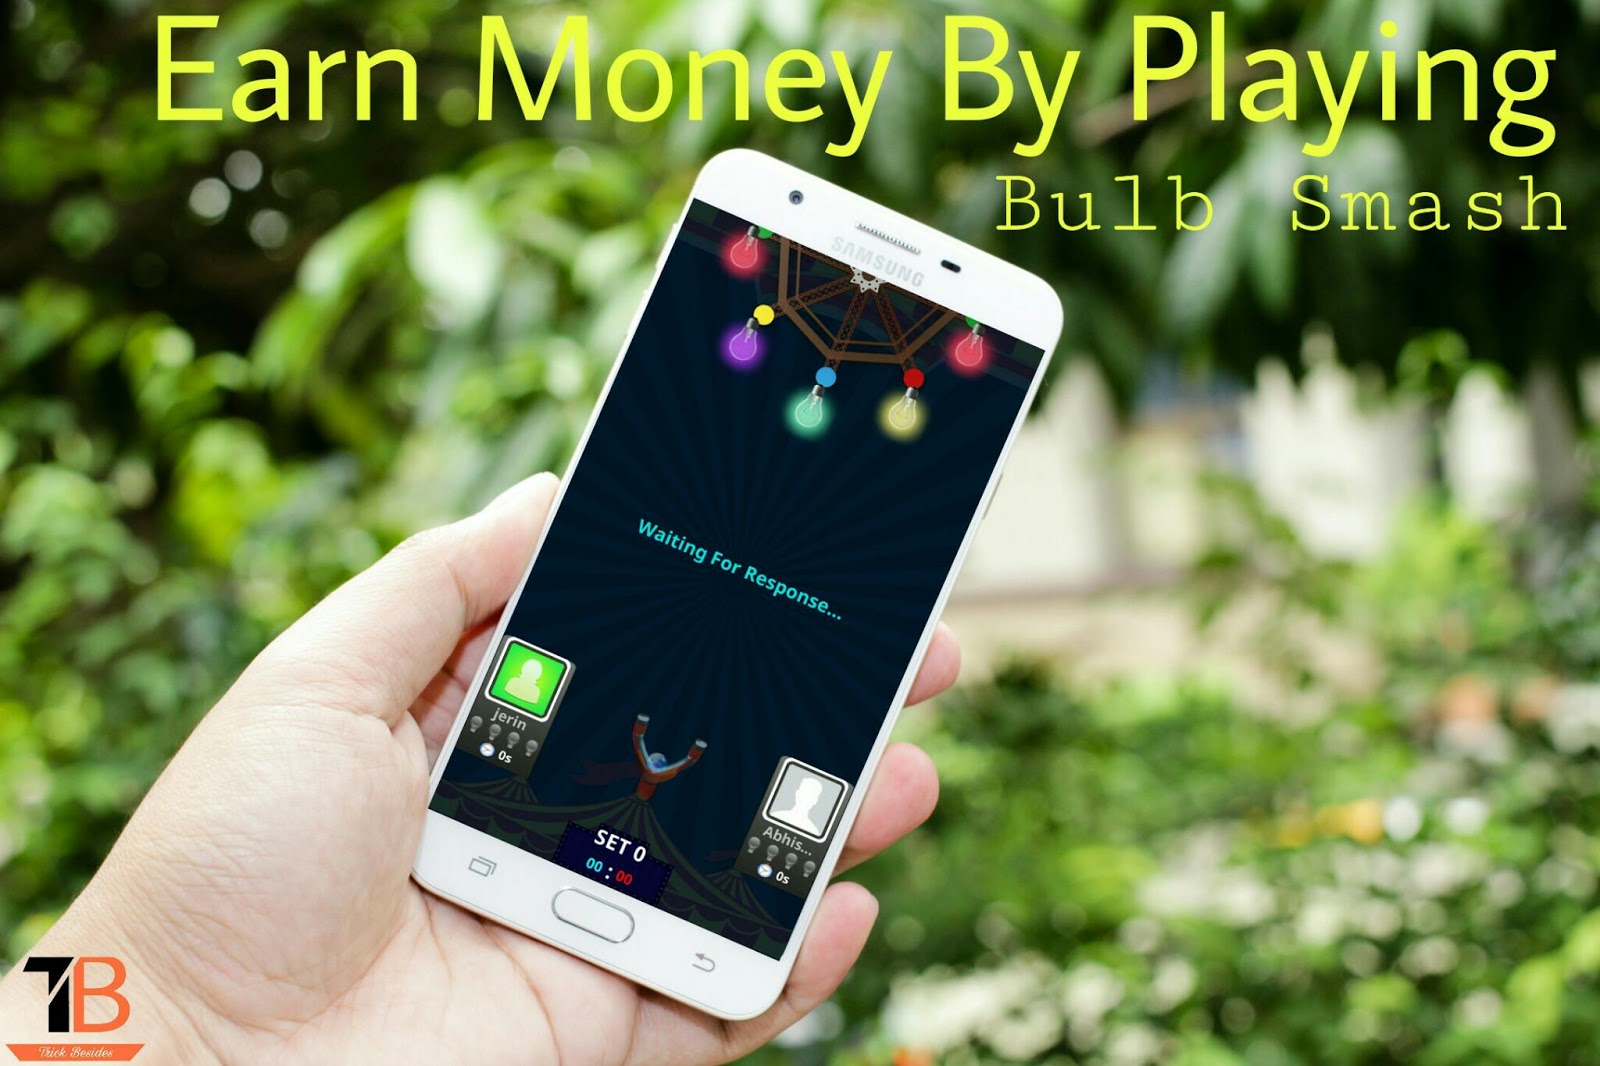 Earn Money by Playing Bulb Smash Game : Proof Added